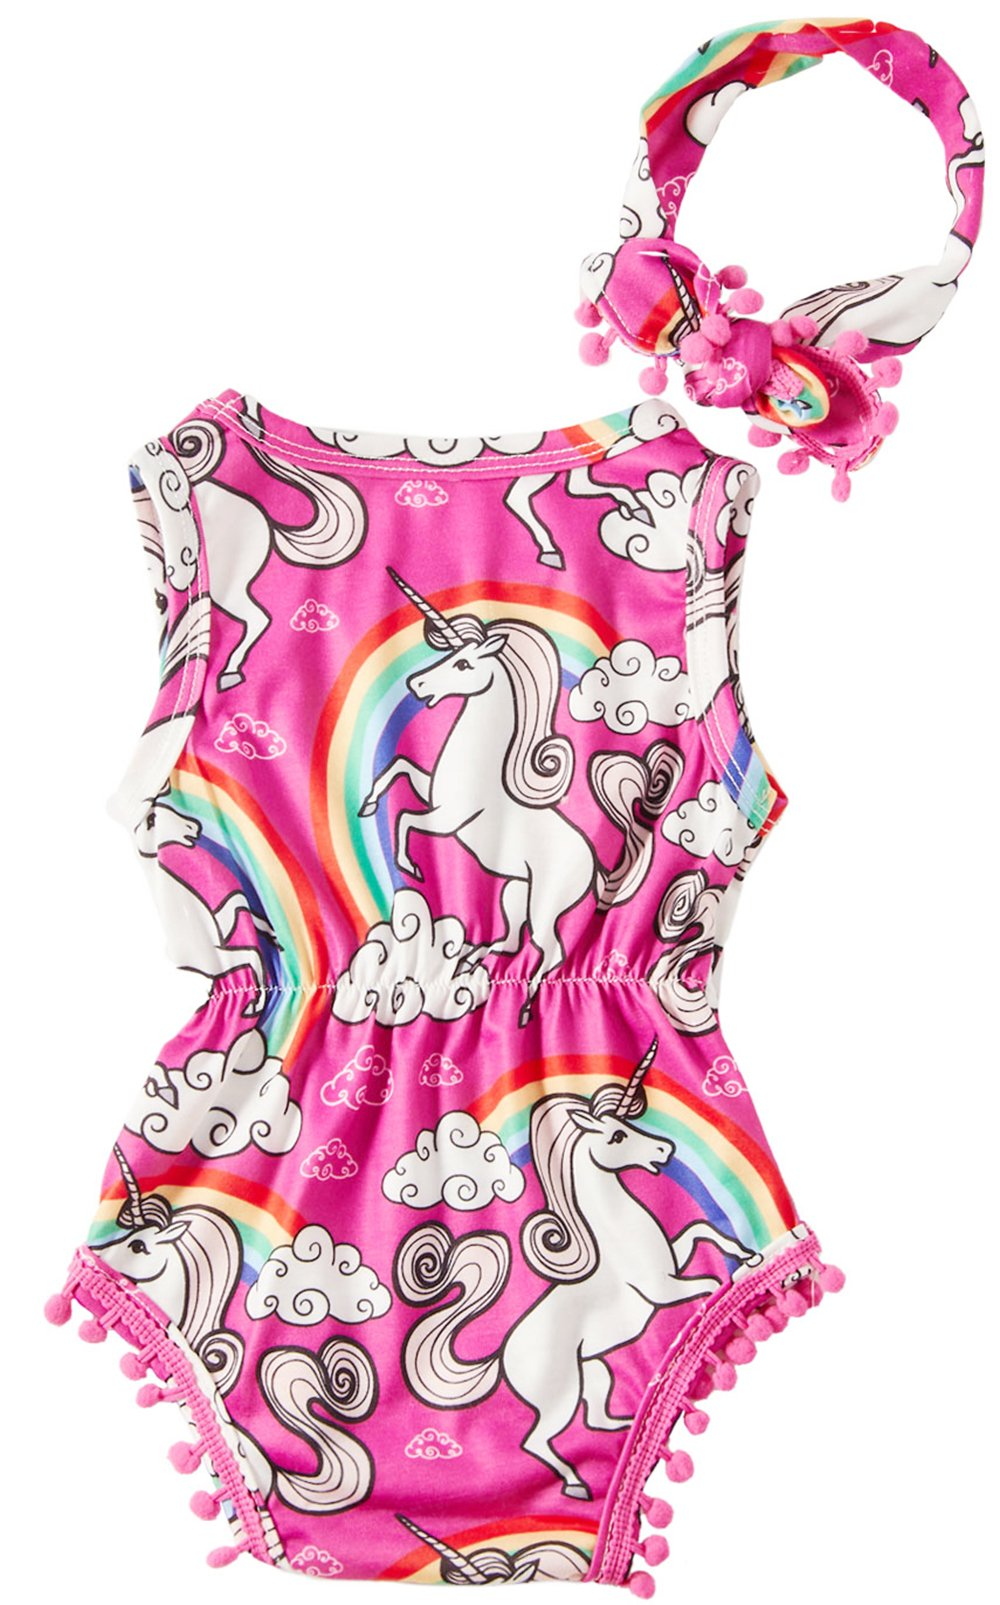 Leapparel 6-12 Months (Size 90) Baby Girls Printed Rainbow UnicornRose red Outfit First Birthday Rompers with Headband Long Sleeve Children Clothes ,Unicorn,3-6Months (Size 80)